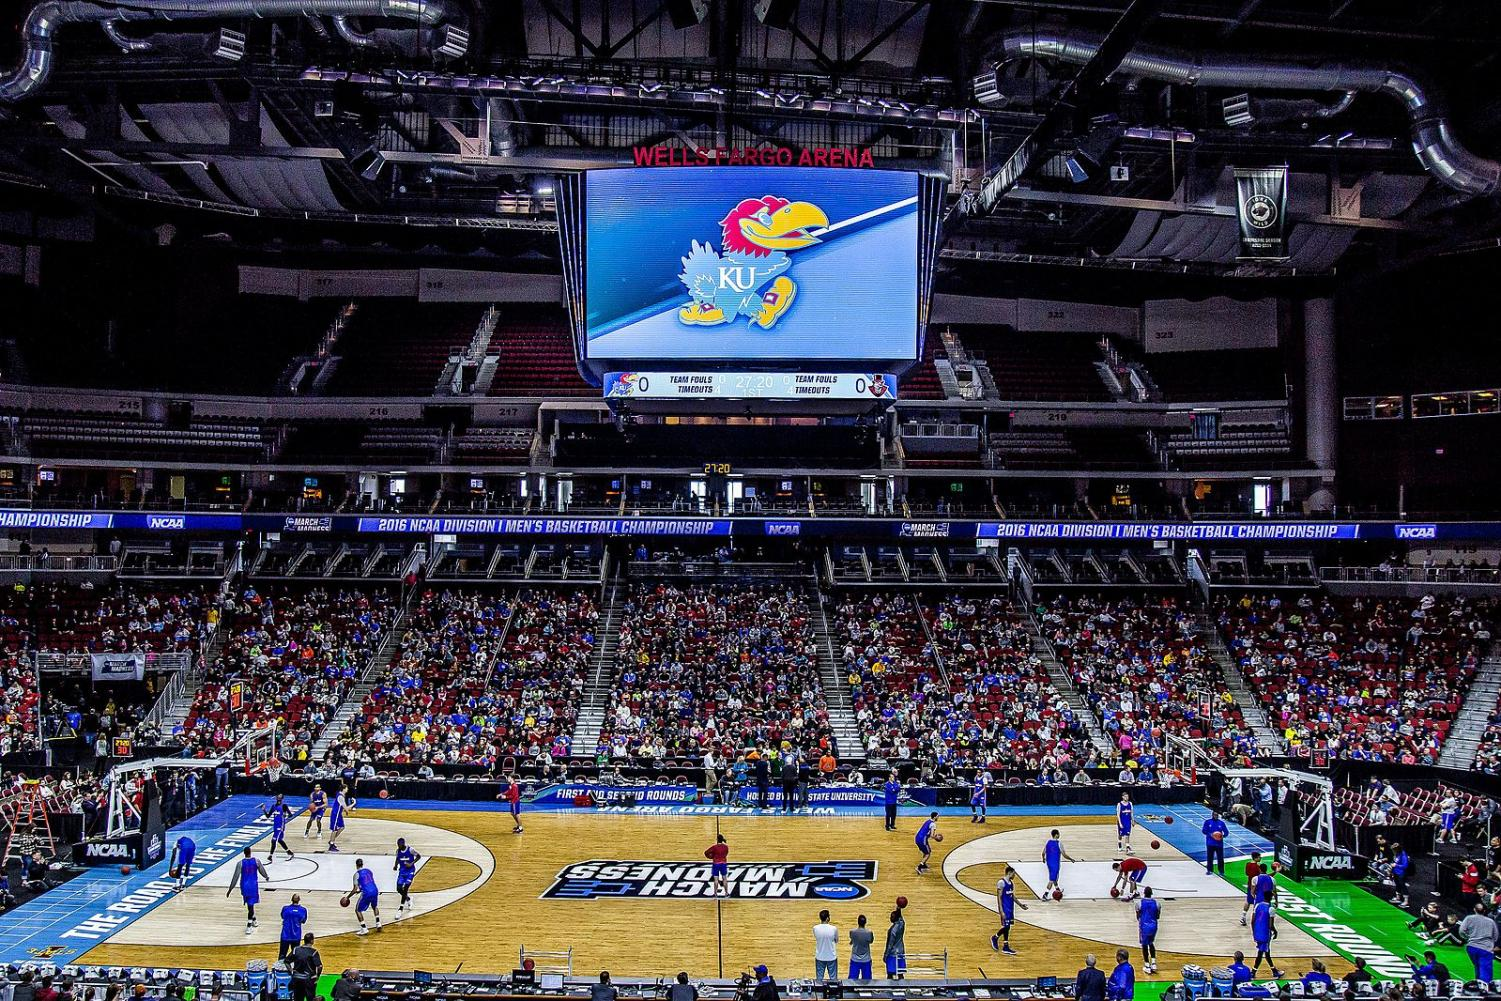 Staff writer Karthik Yalala that with the revenue events such as March Madness brings, NCAA athletes should get paid.